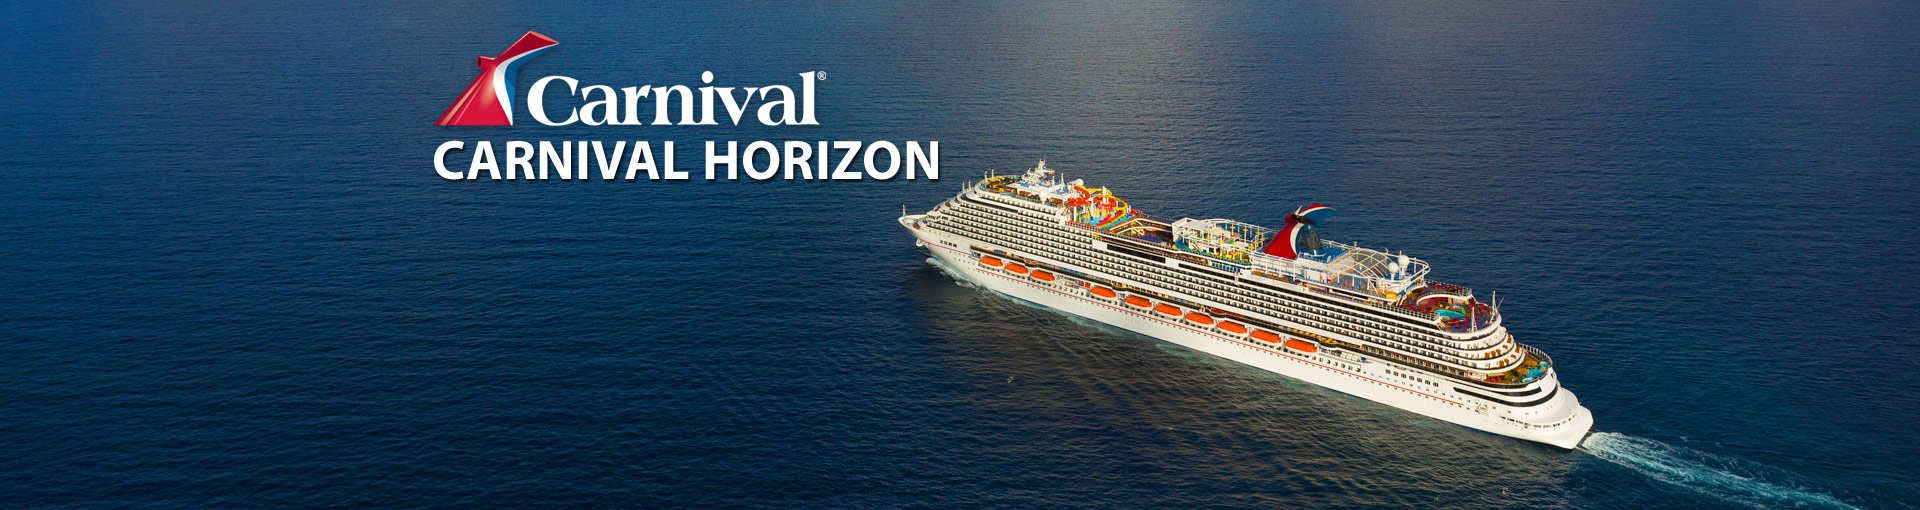 carnival-horizon-cruise-ship-banner